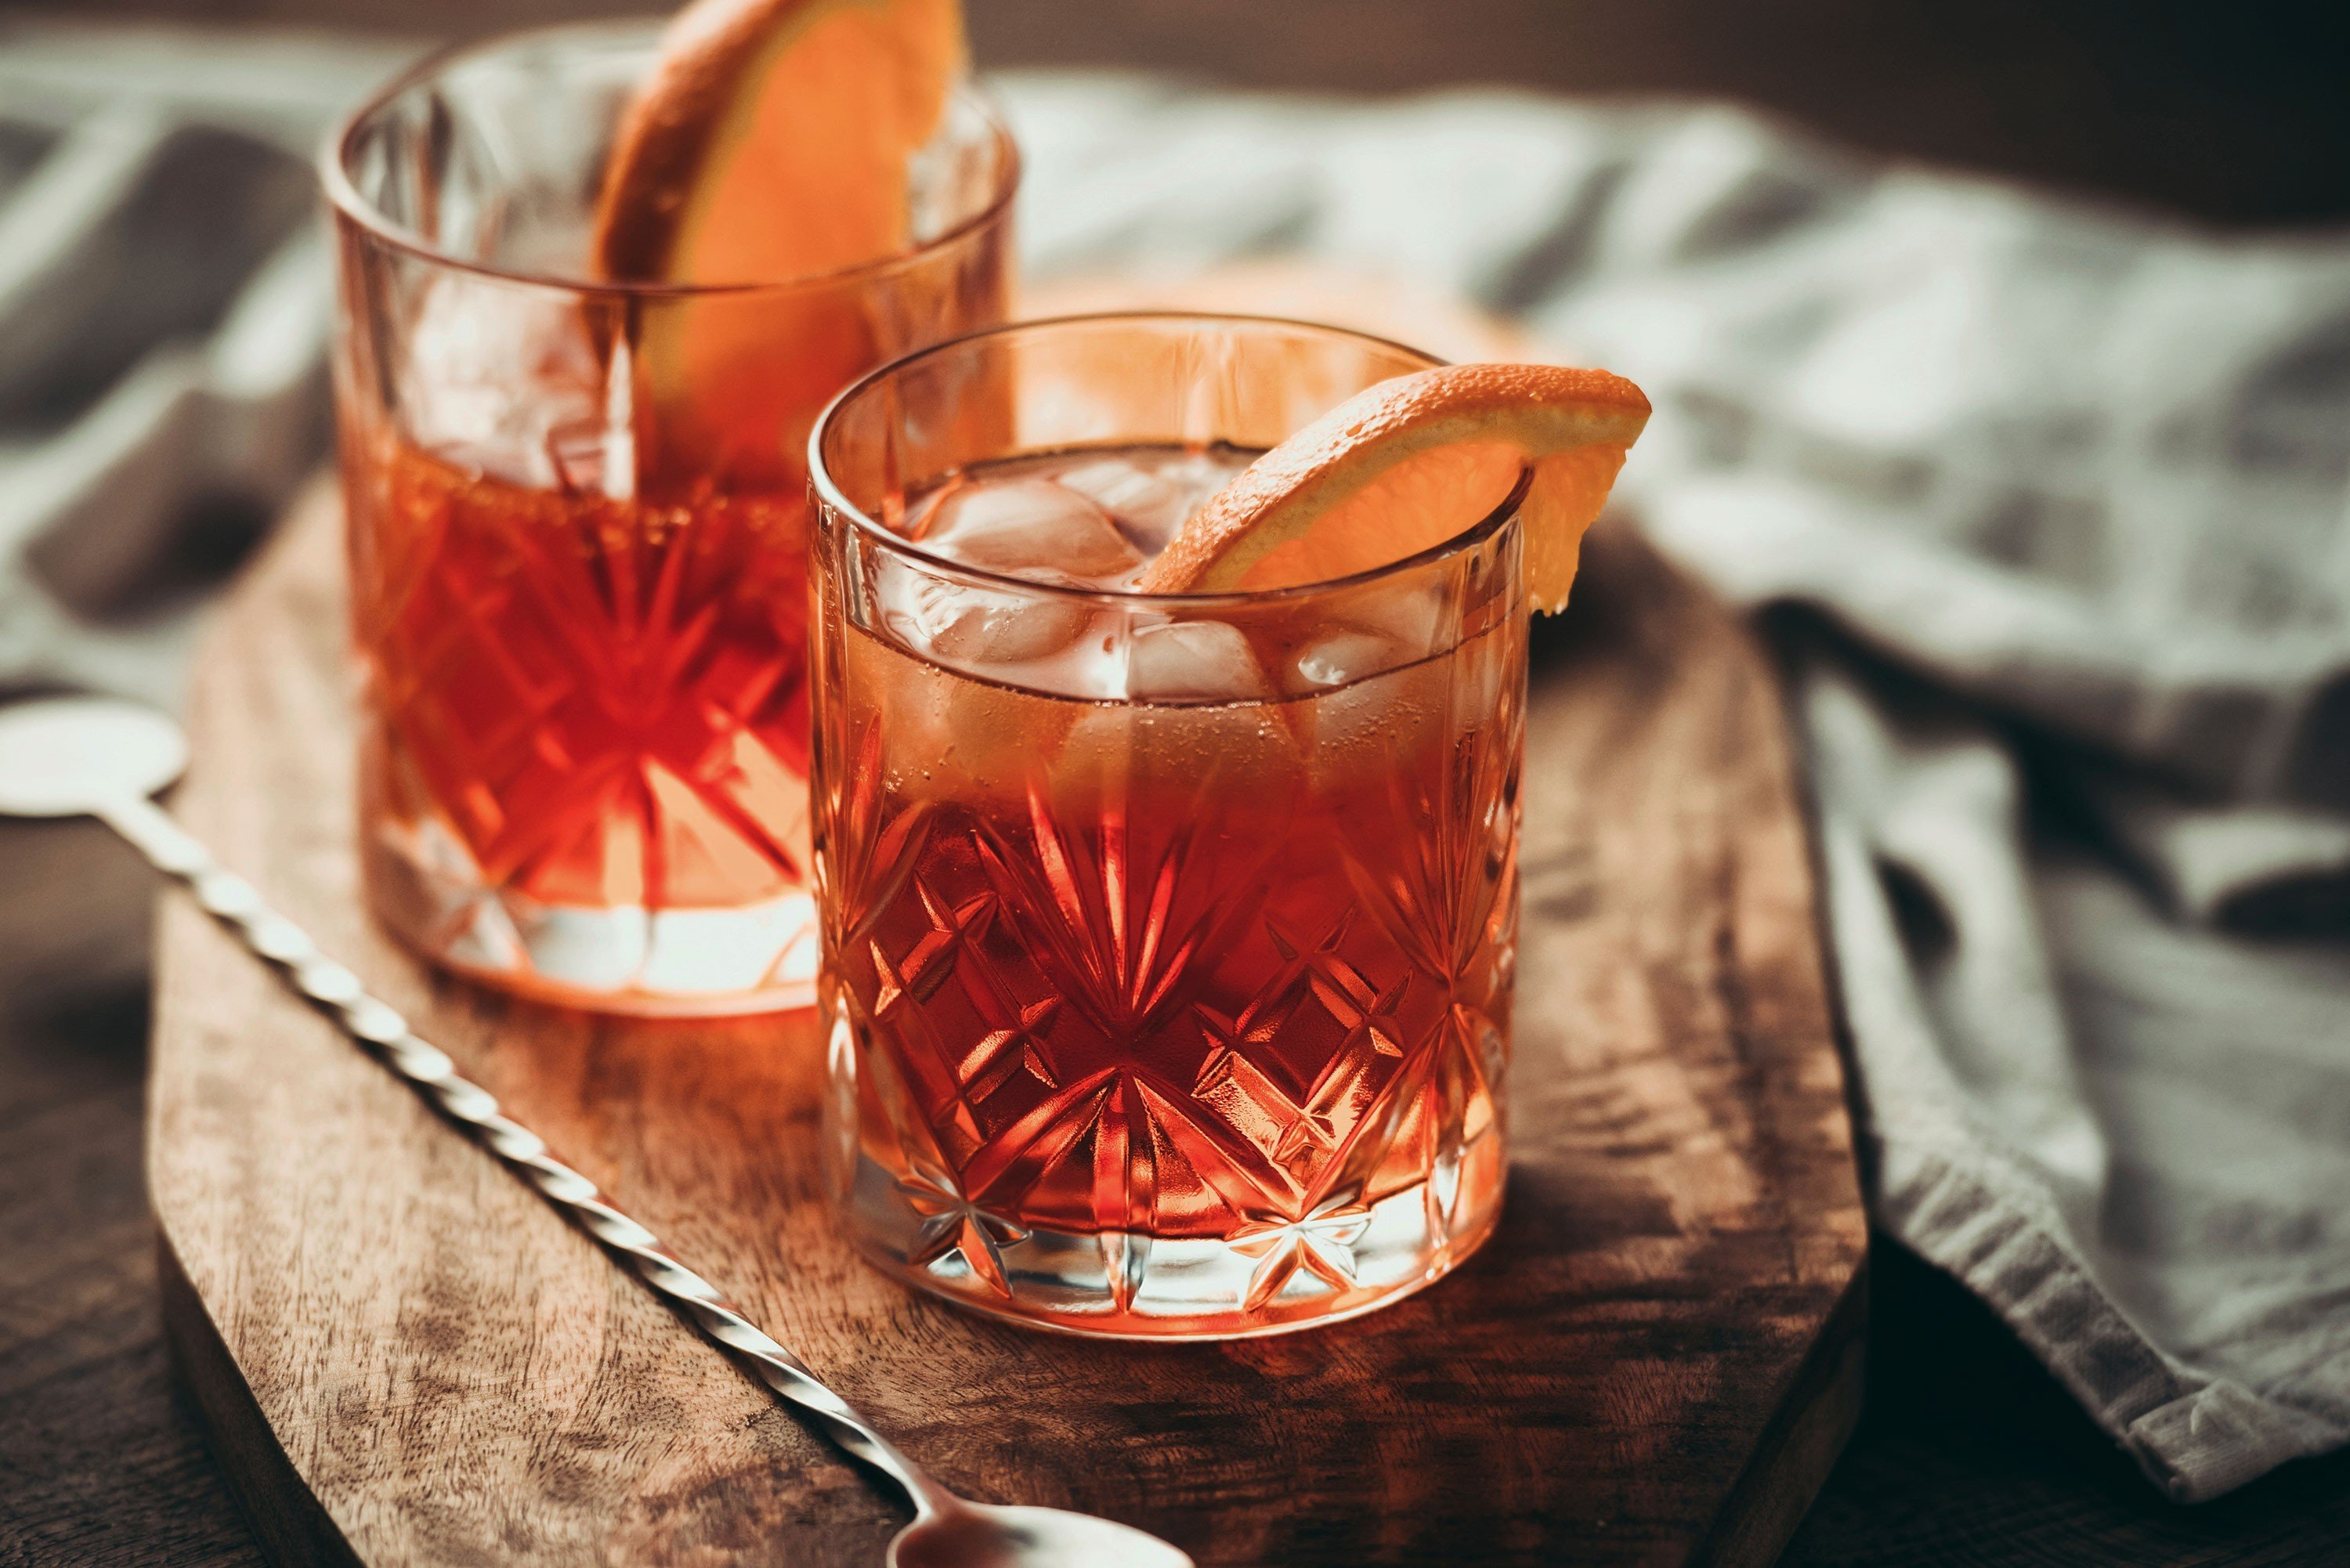 Food + Drink table cup sitting indoor Drink glass alcoholic beverage distilled beverage slice whisky negroni old fashioned container beverage alcohol close meal sliced